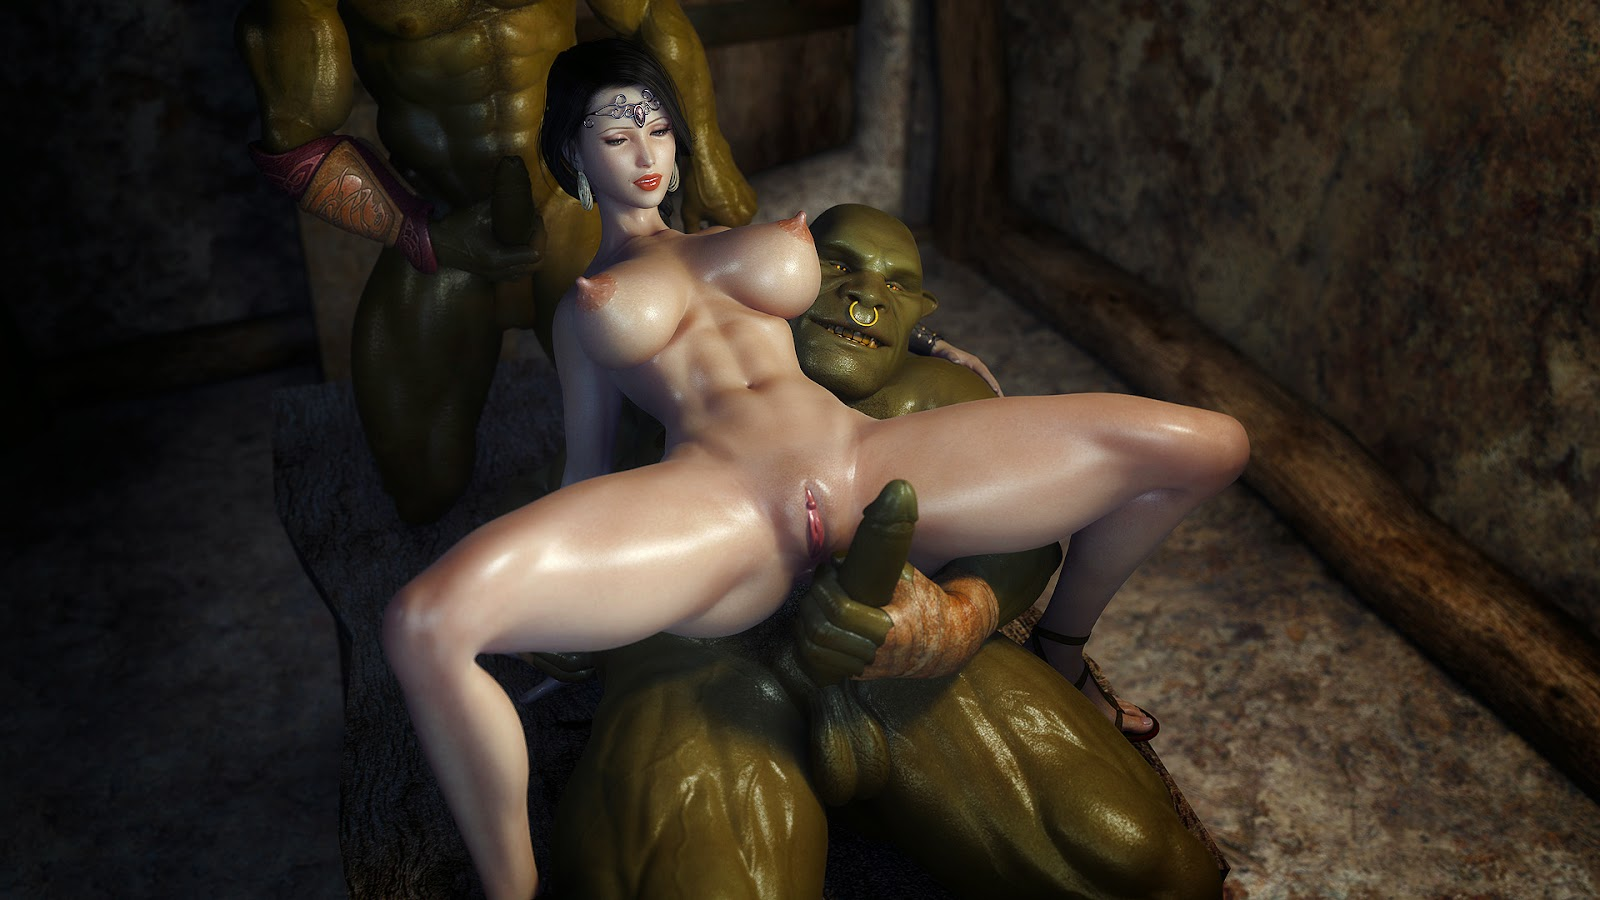 Secret of beauty orc ritual 4